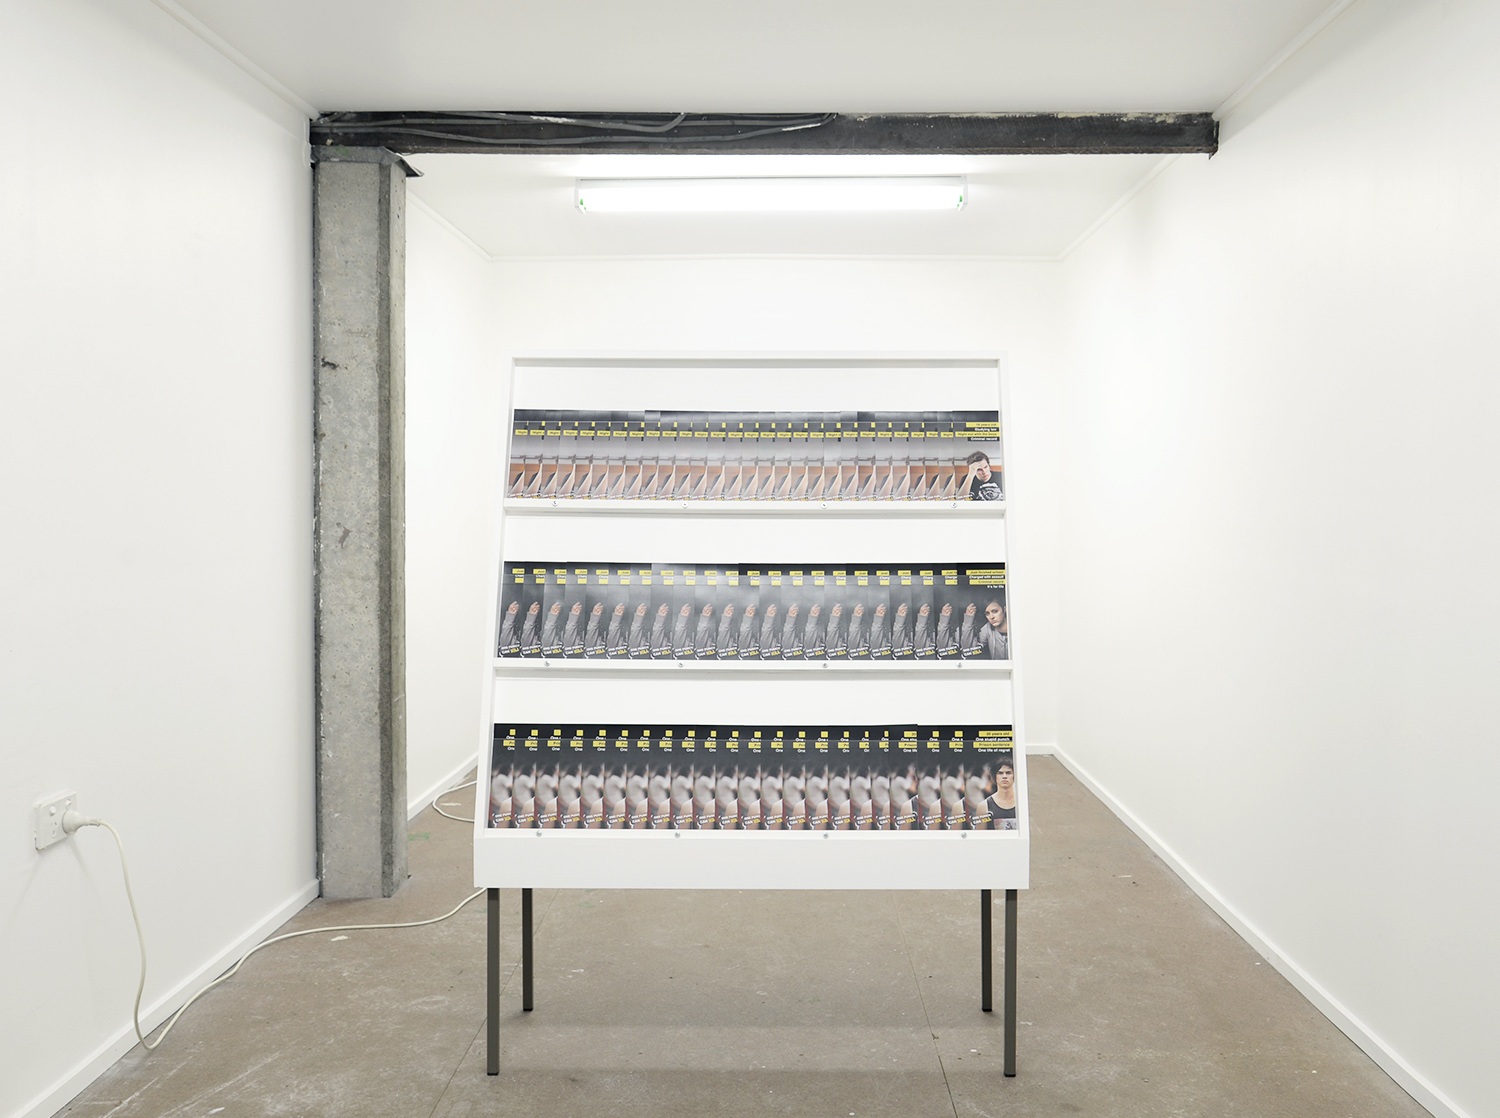 Local Solutions for General Anxieties 2018 acrylic, MDF, appropriated  One Punch can Kill catalogues, steel frame, screws, nuts, bolts approx 1500mm x 900mm x 400mm